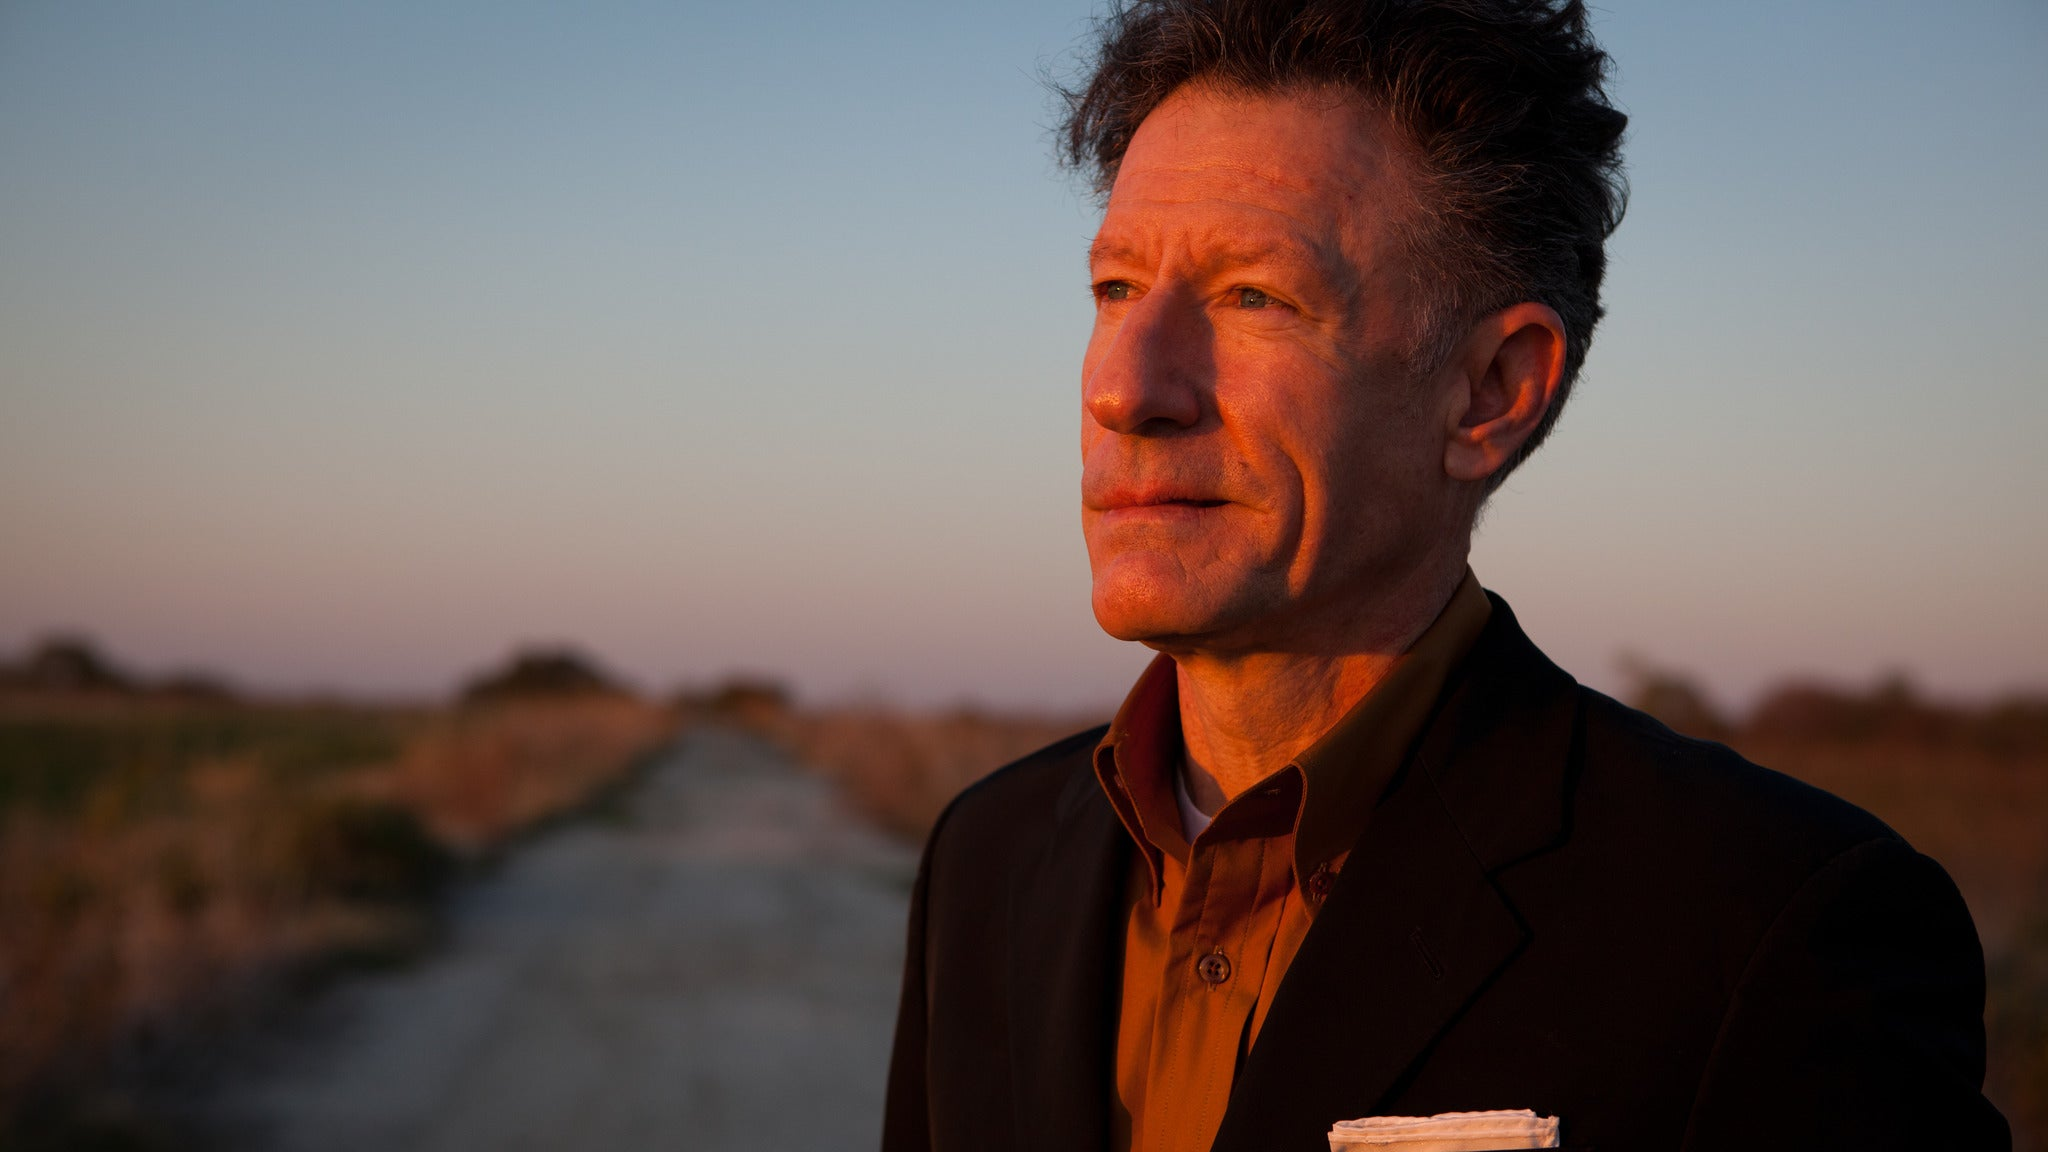 Lyle Lovett at Alabama Theatre